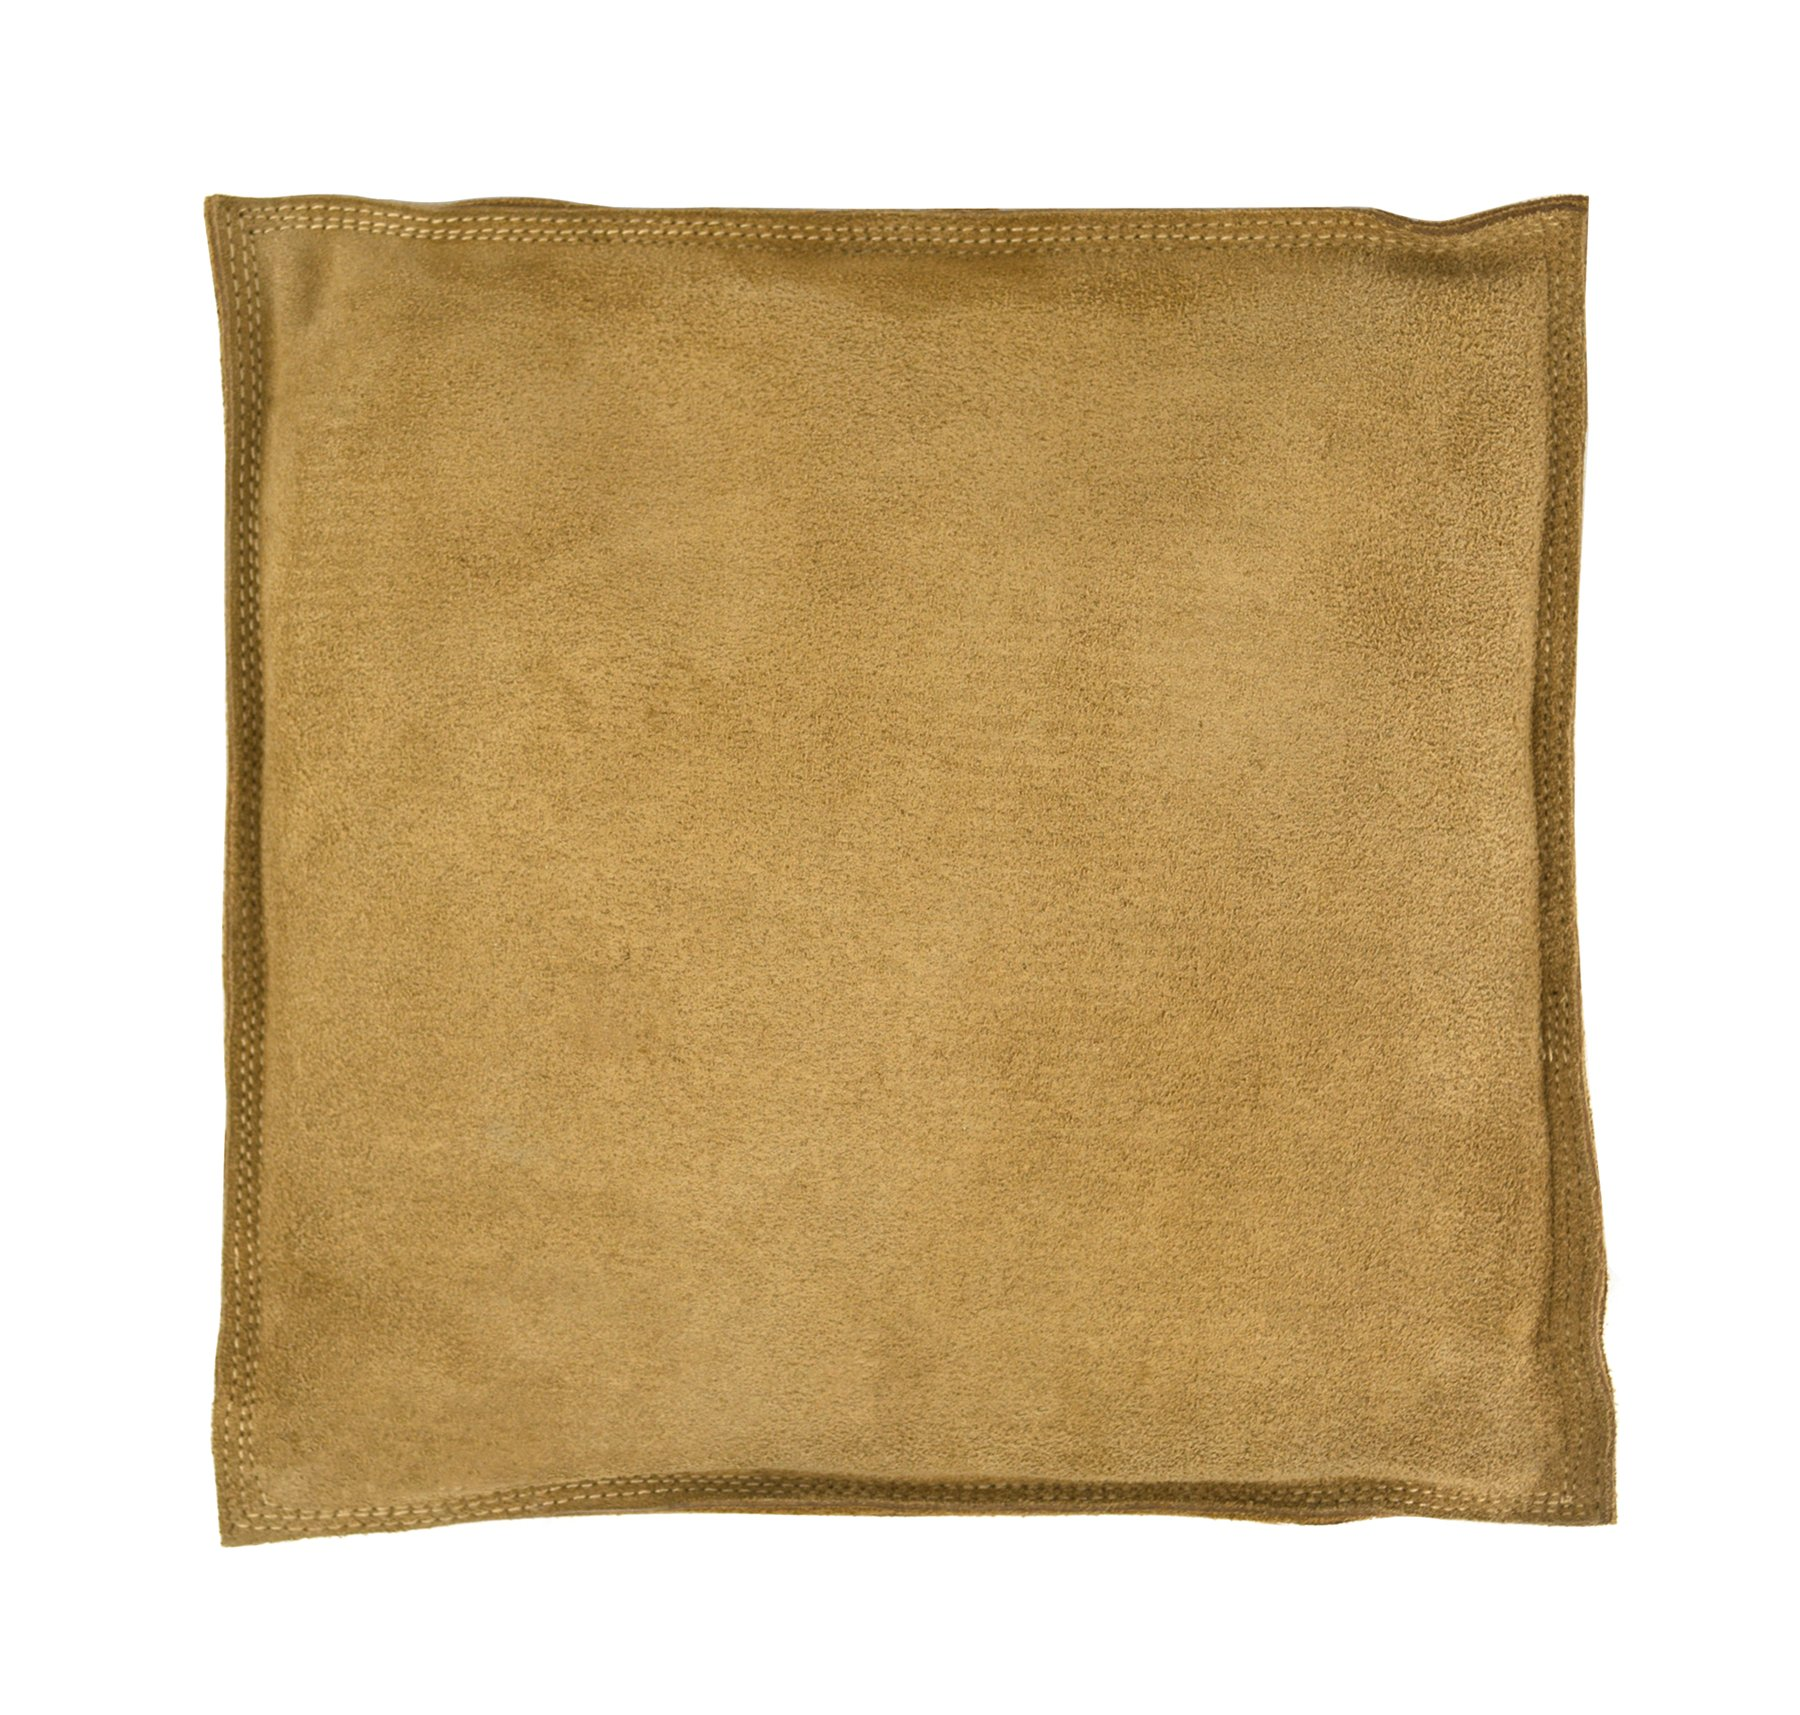 10'' Square Leather Leather Sandbag Cushion for Metal Dapping Stamping Hammering Chasing Forming Jewelry Tool by PMC Supplies LLC